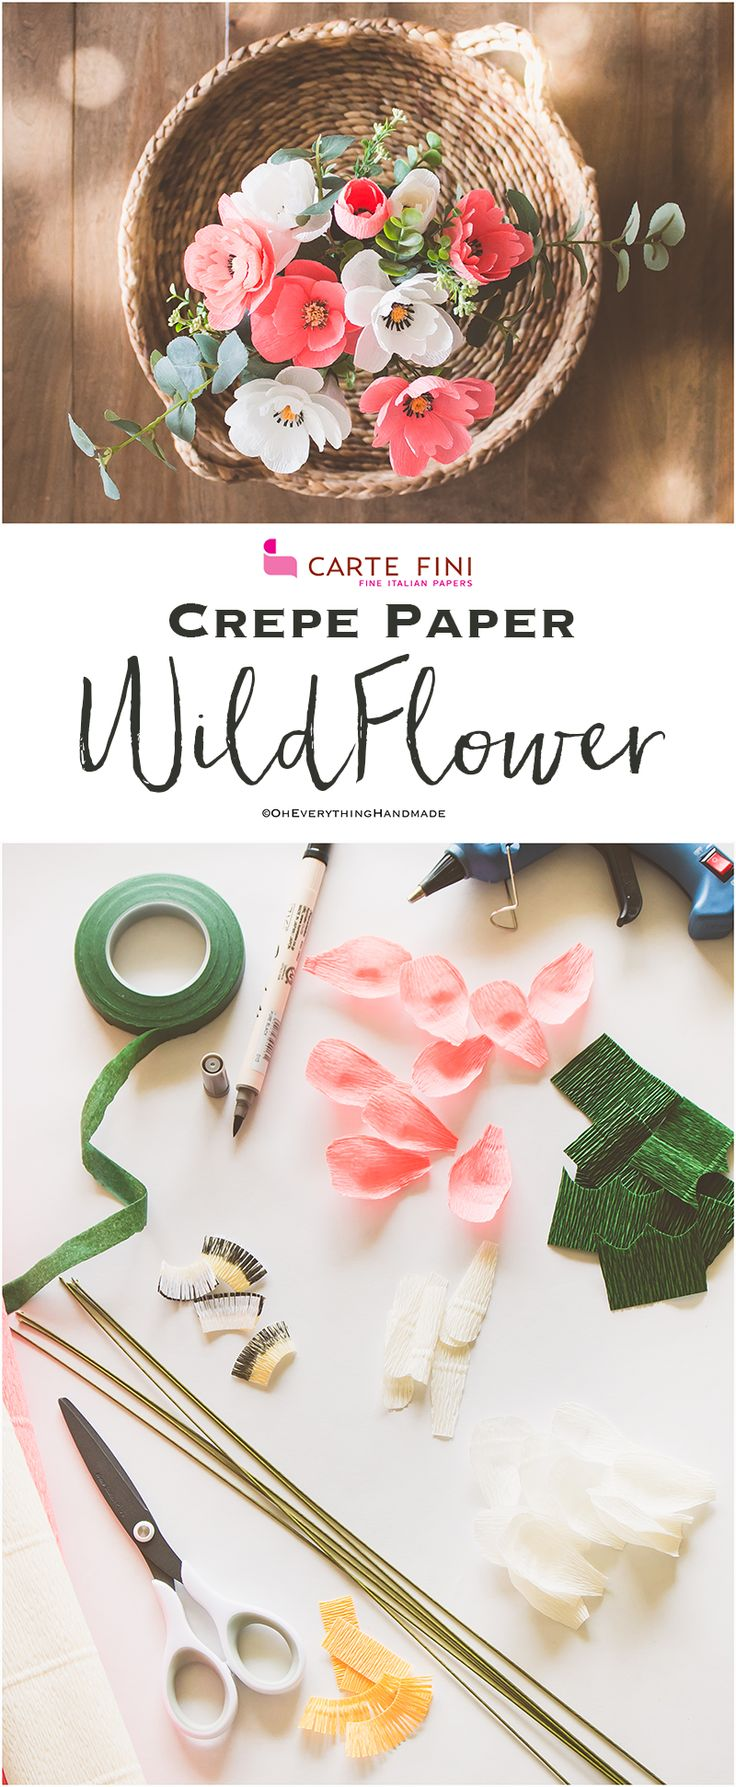 I am so stoked to finally show you some Crepe paper flower tutorials. If you are subscribed to my newsletter, then you may have read in my monthly June newsletter that I have partnered with cartefini.com, which is very exciting for me.